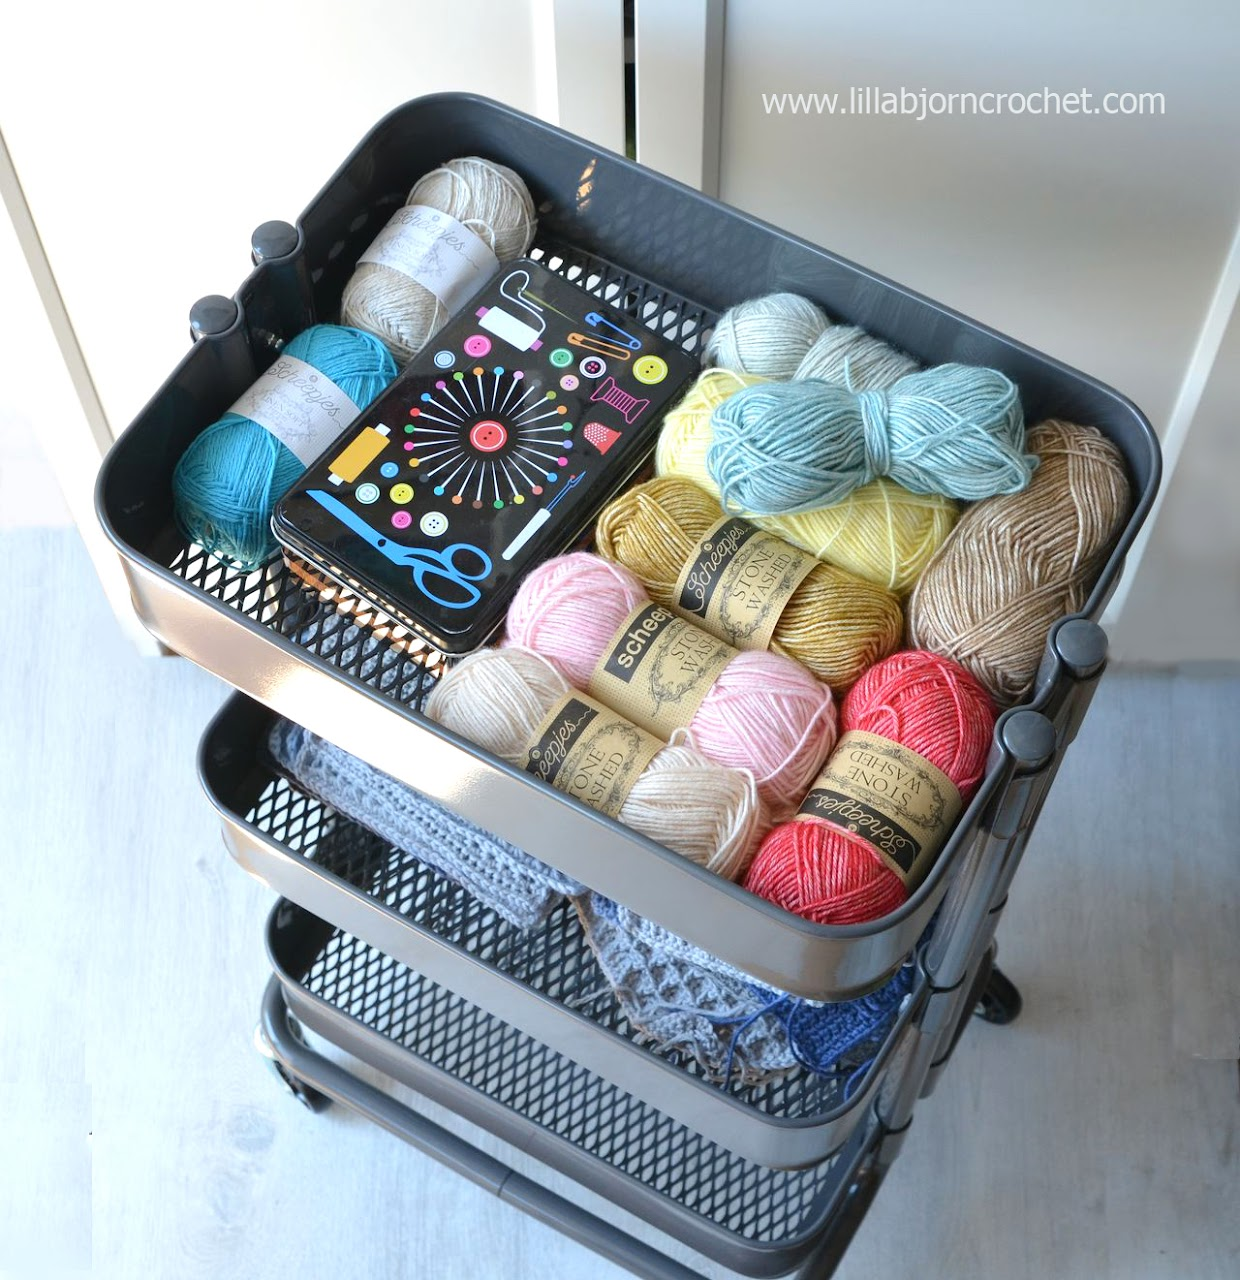 Trolley from IKEA is perfect to store current crochet and knitting wip's and yarns